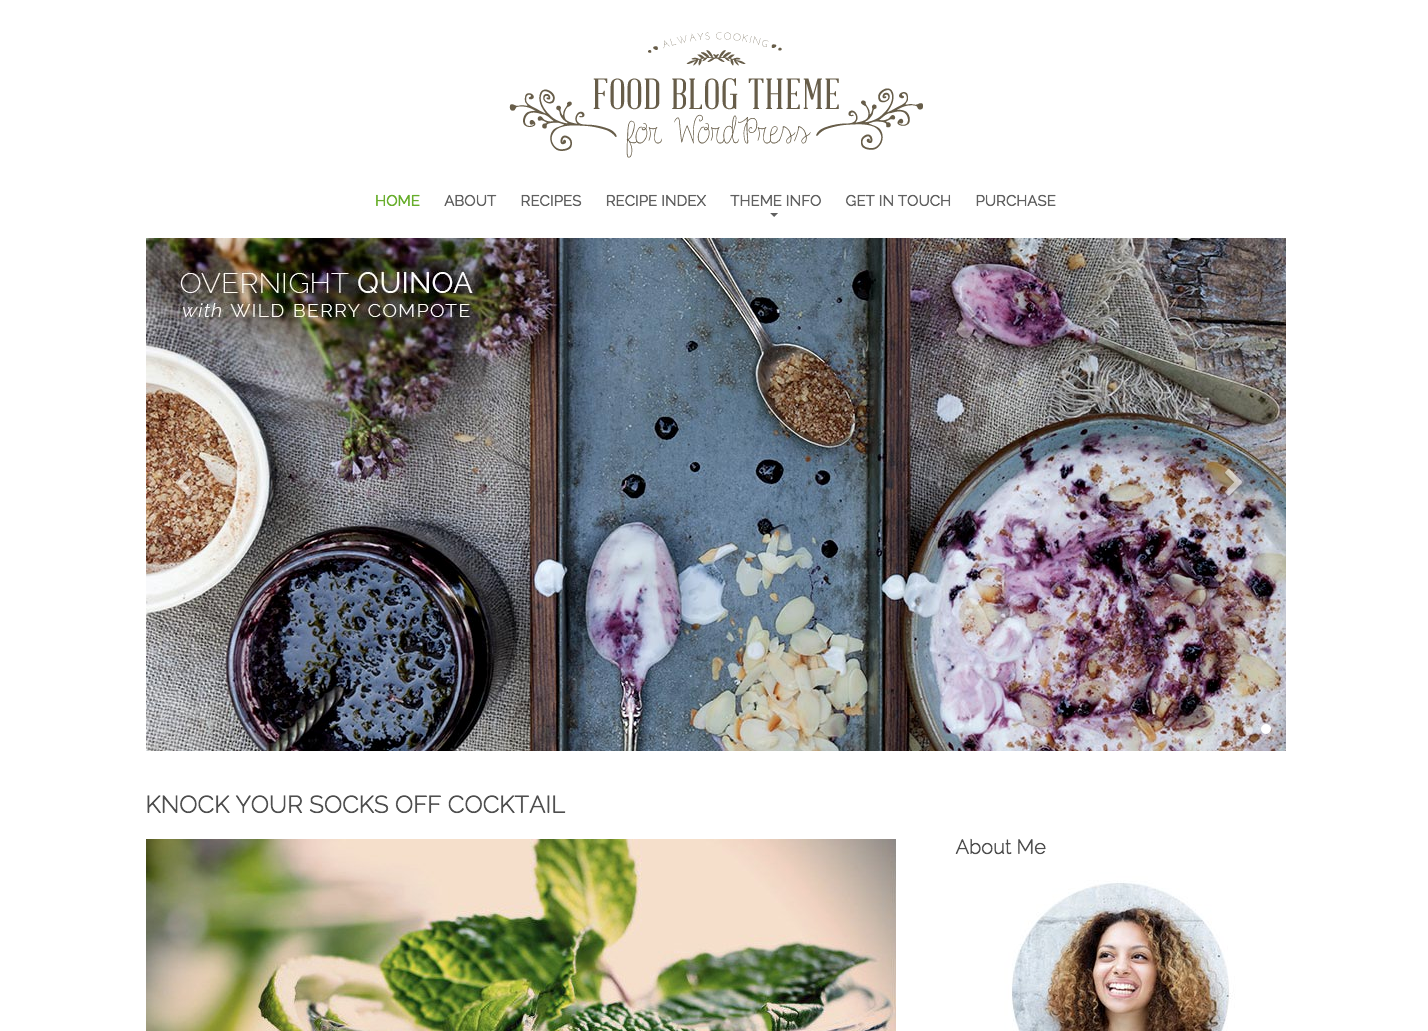 Food Blog Theme perfect for a WordPress blog